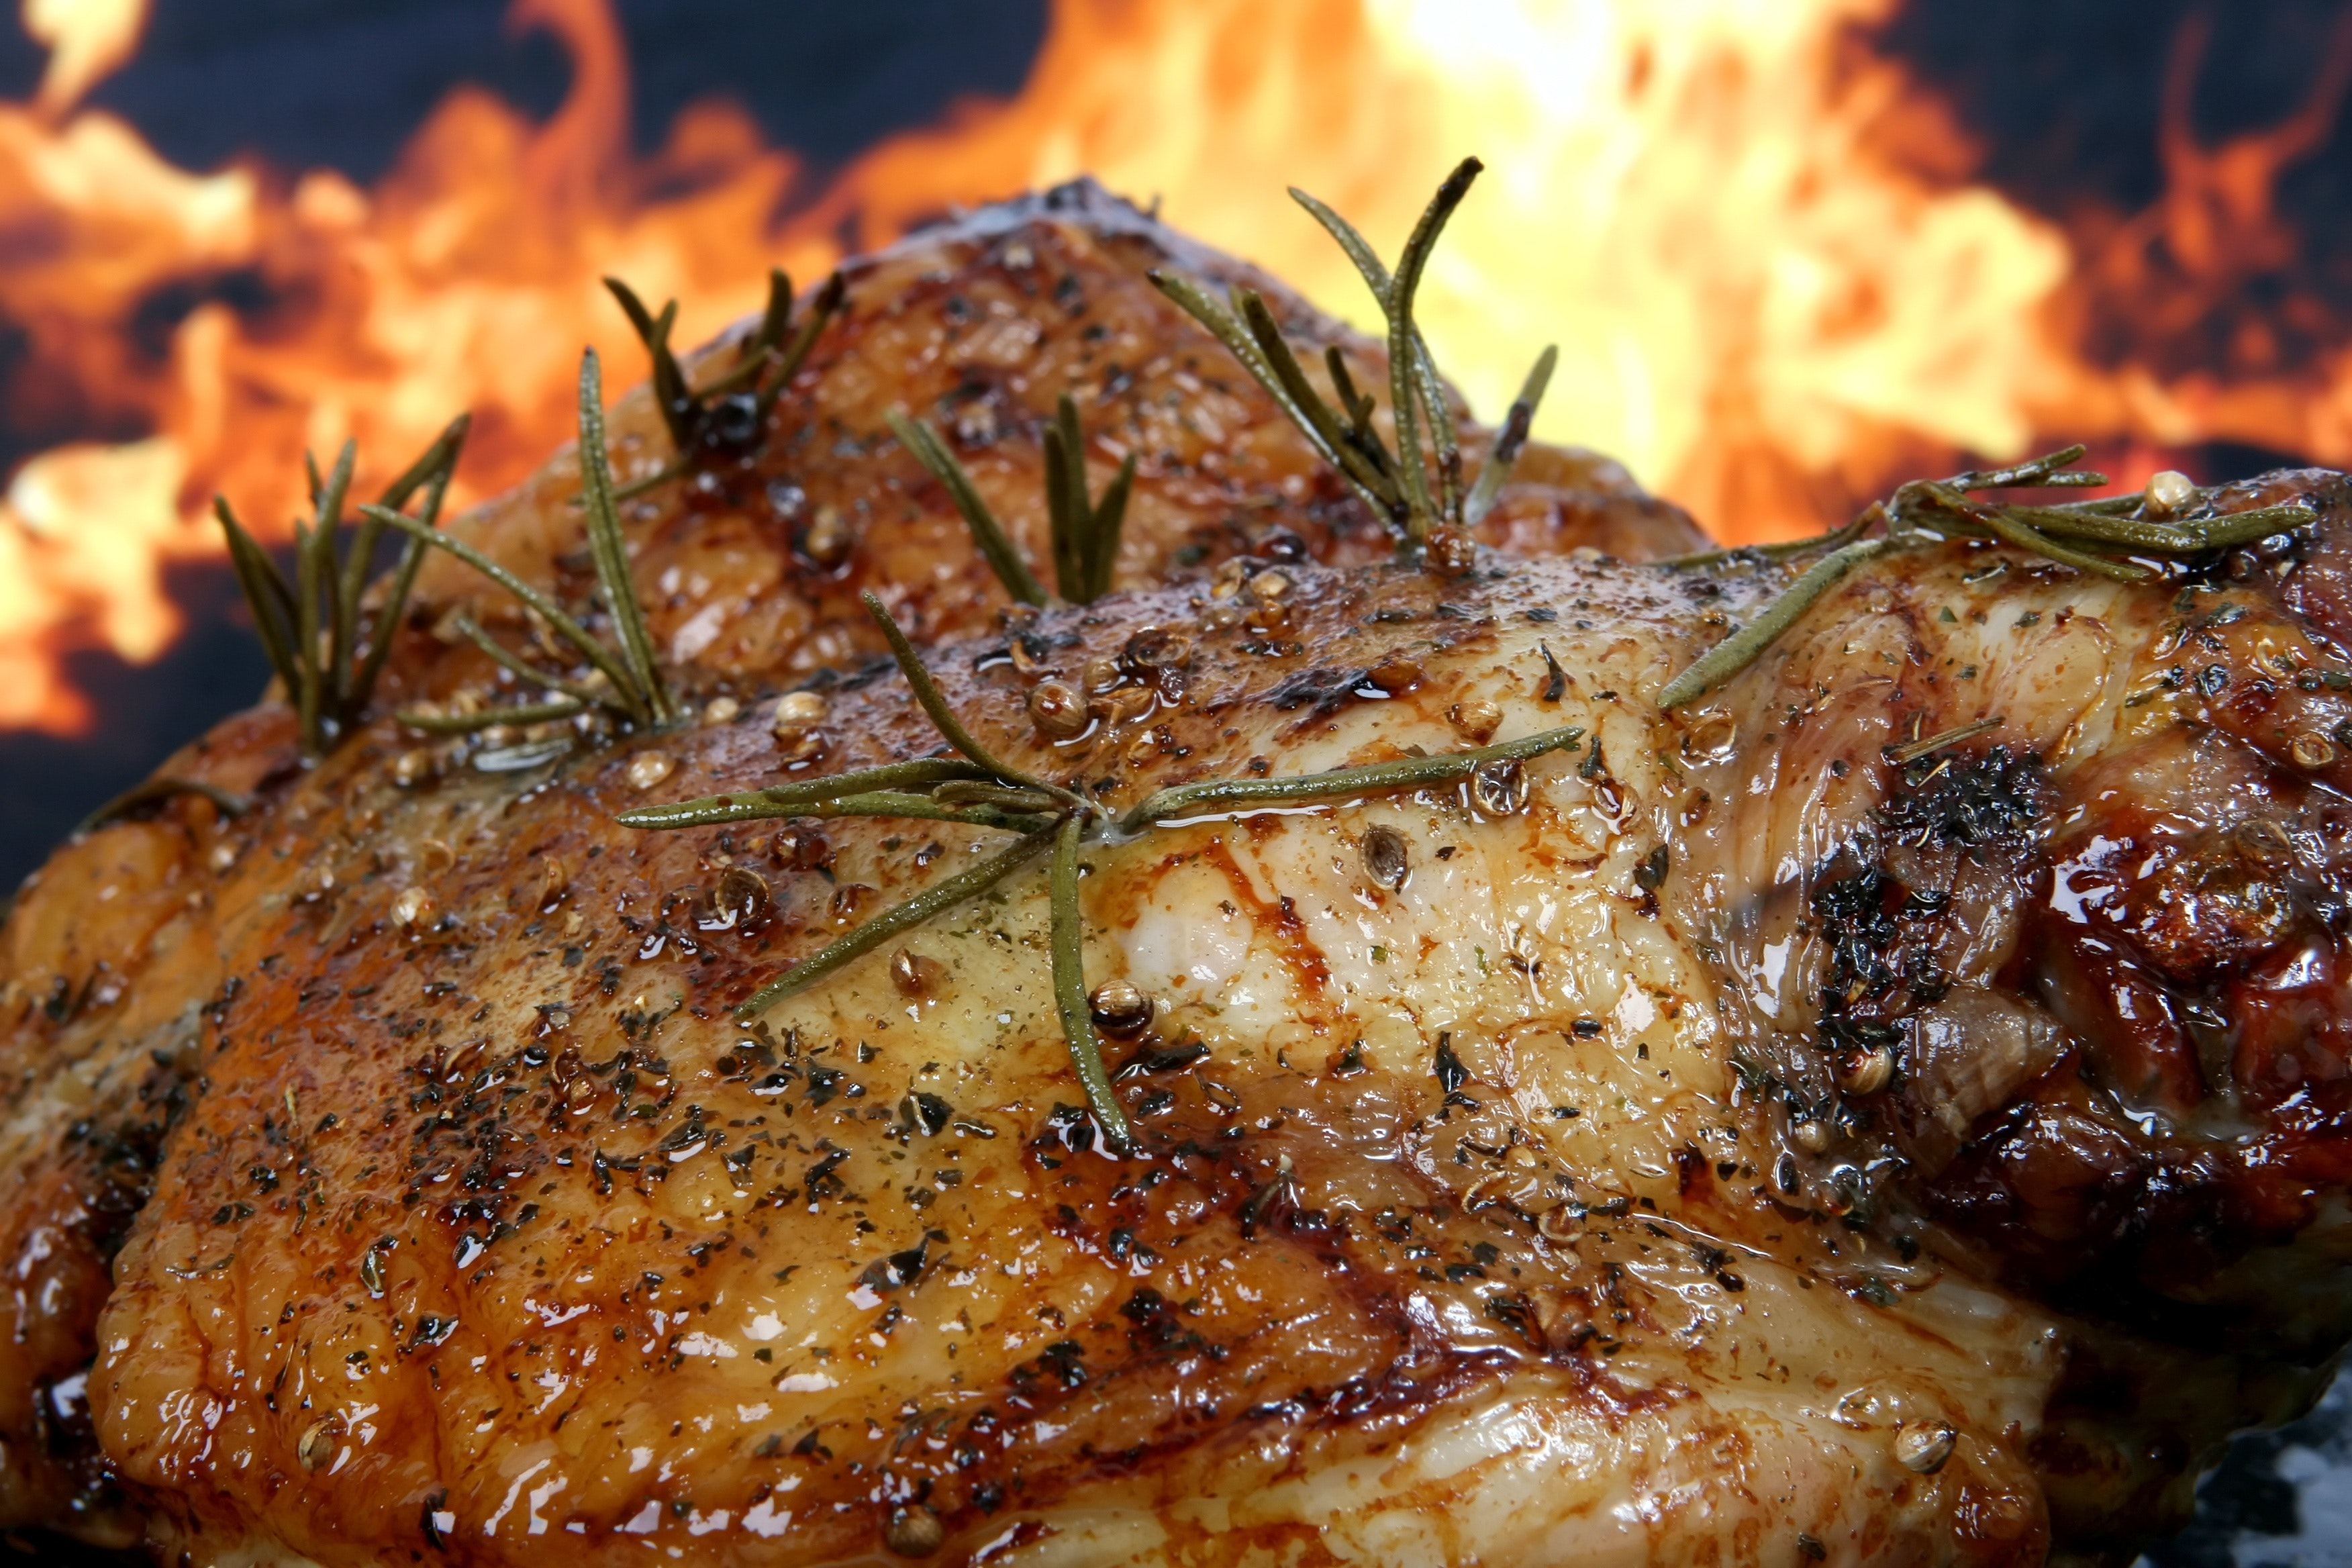 Cooked Meat, Barbecue, Herbs, Rosemary, Roasted, HQ Photo